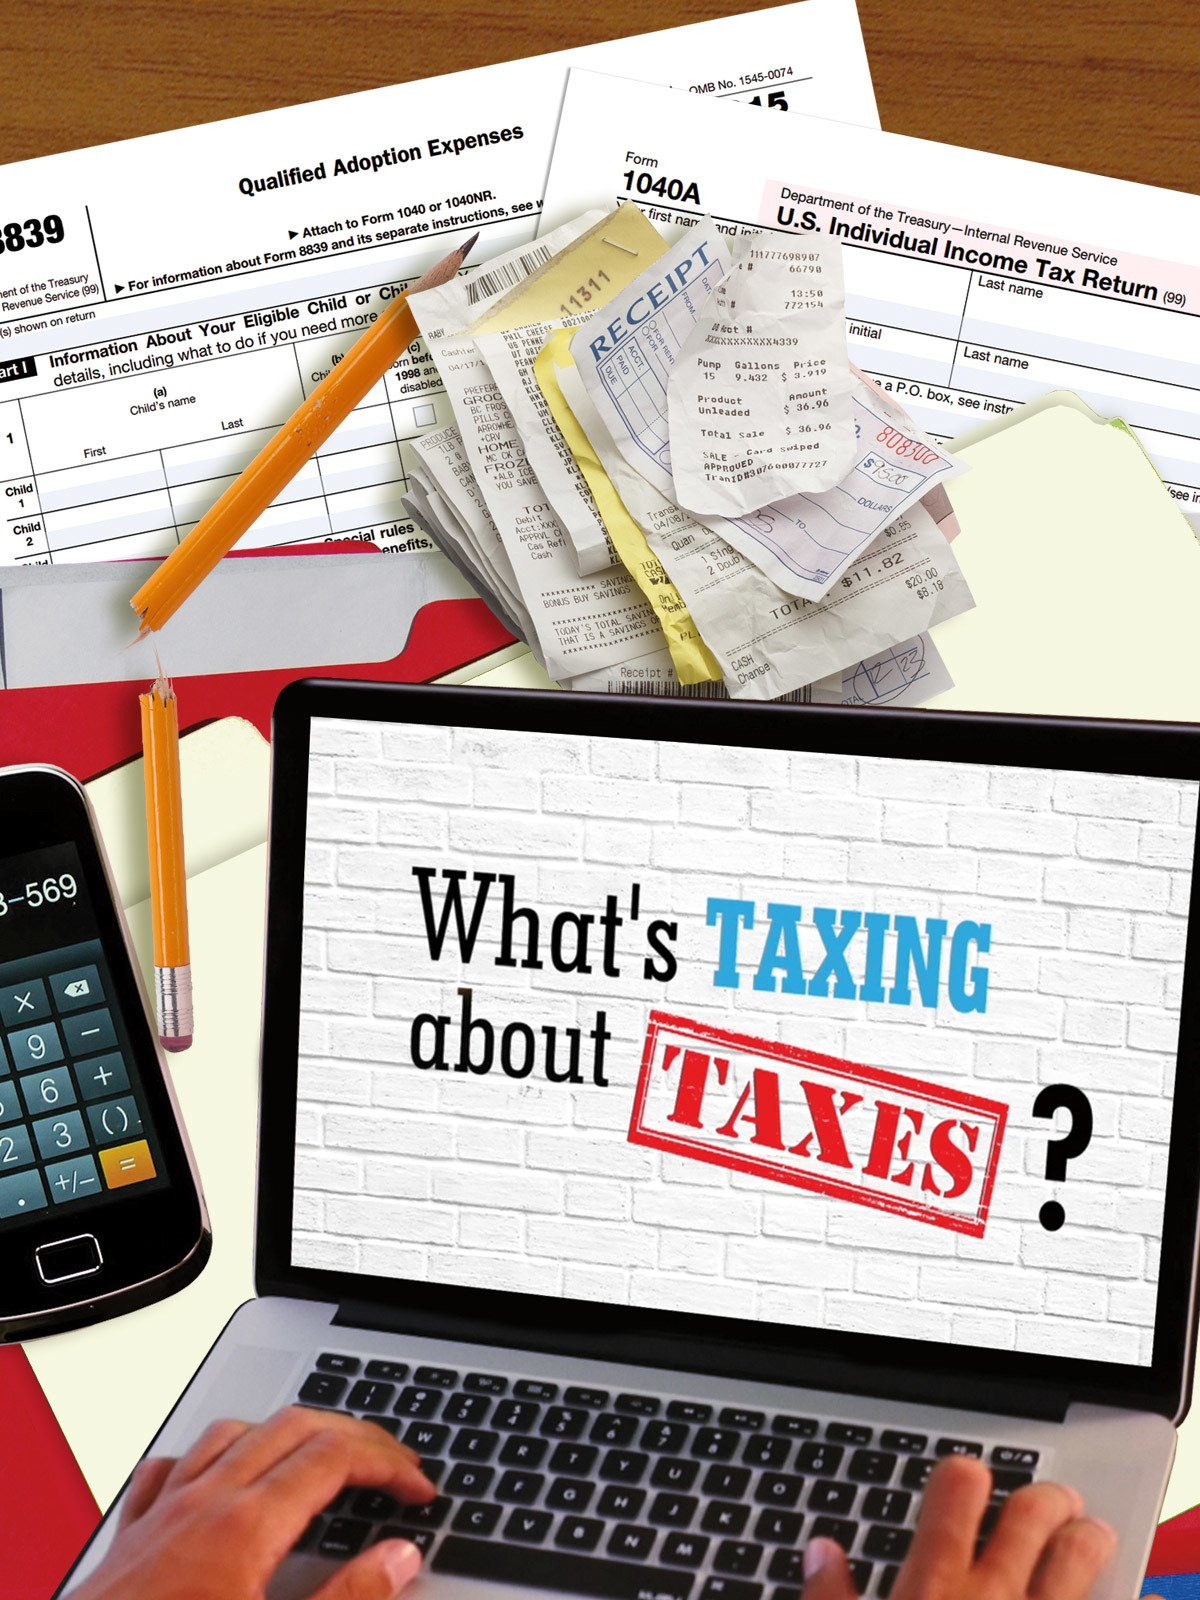 Amazon Whats Taxing About Taxes Jeff Smiejek Jesse Hathaway